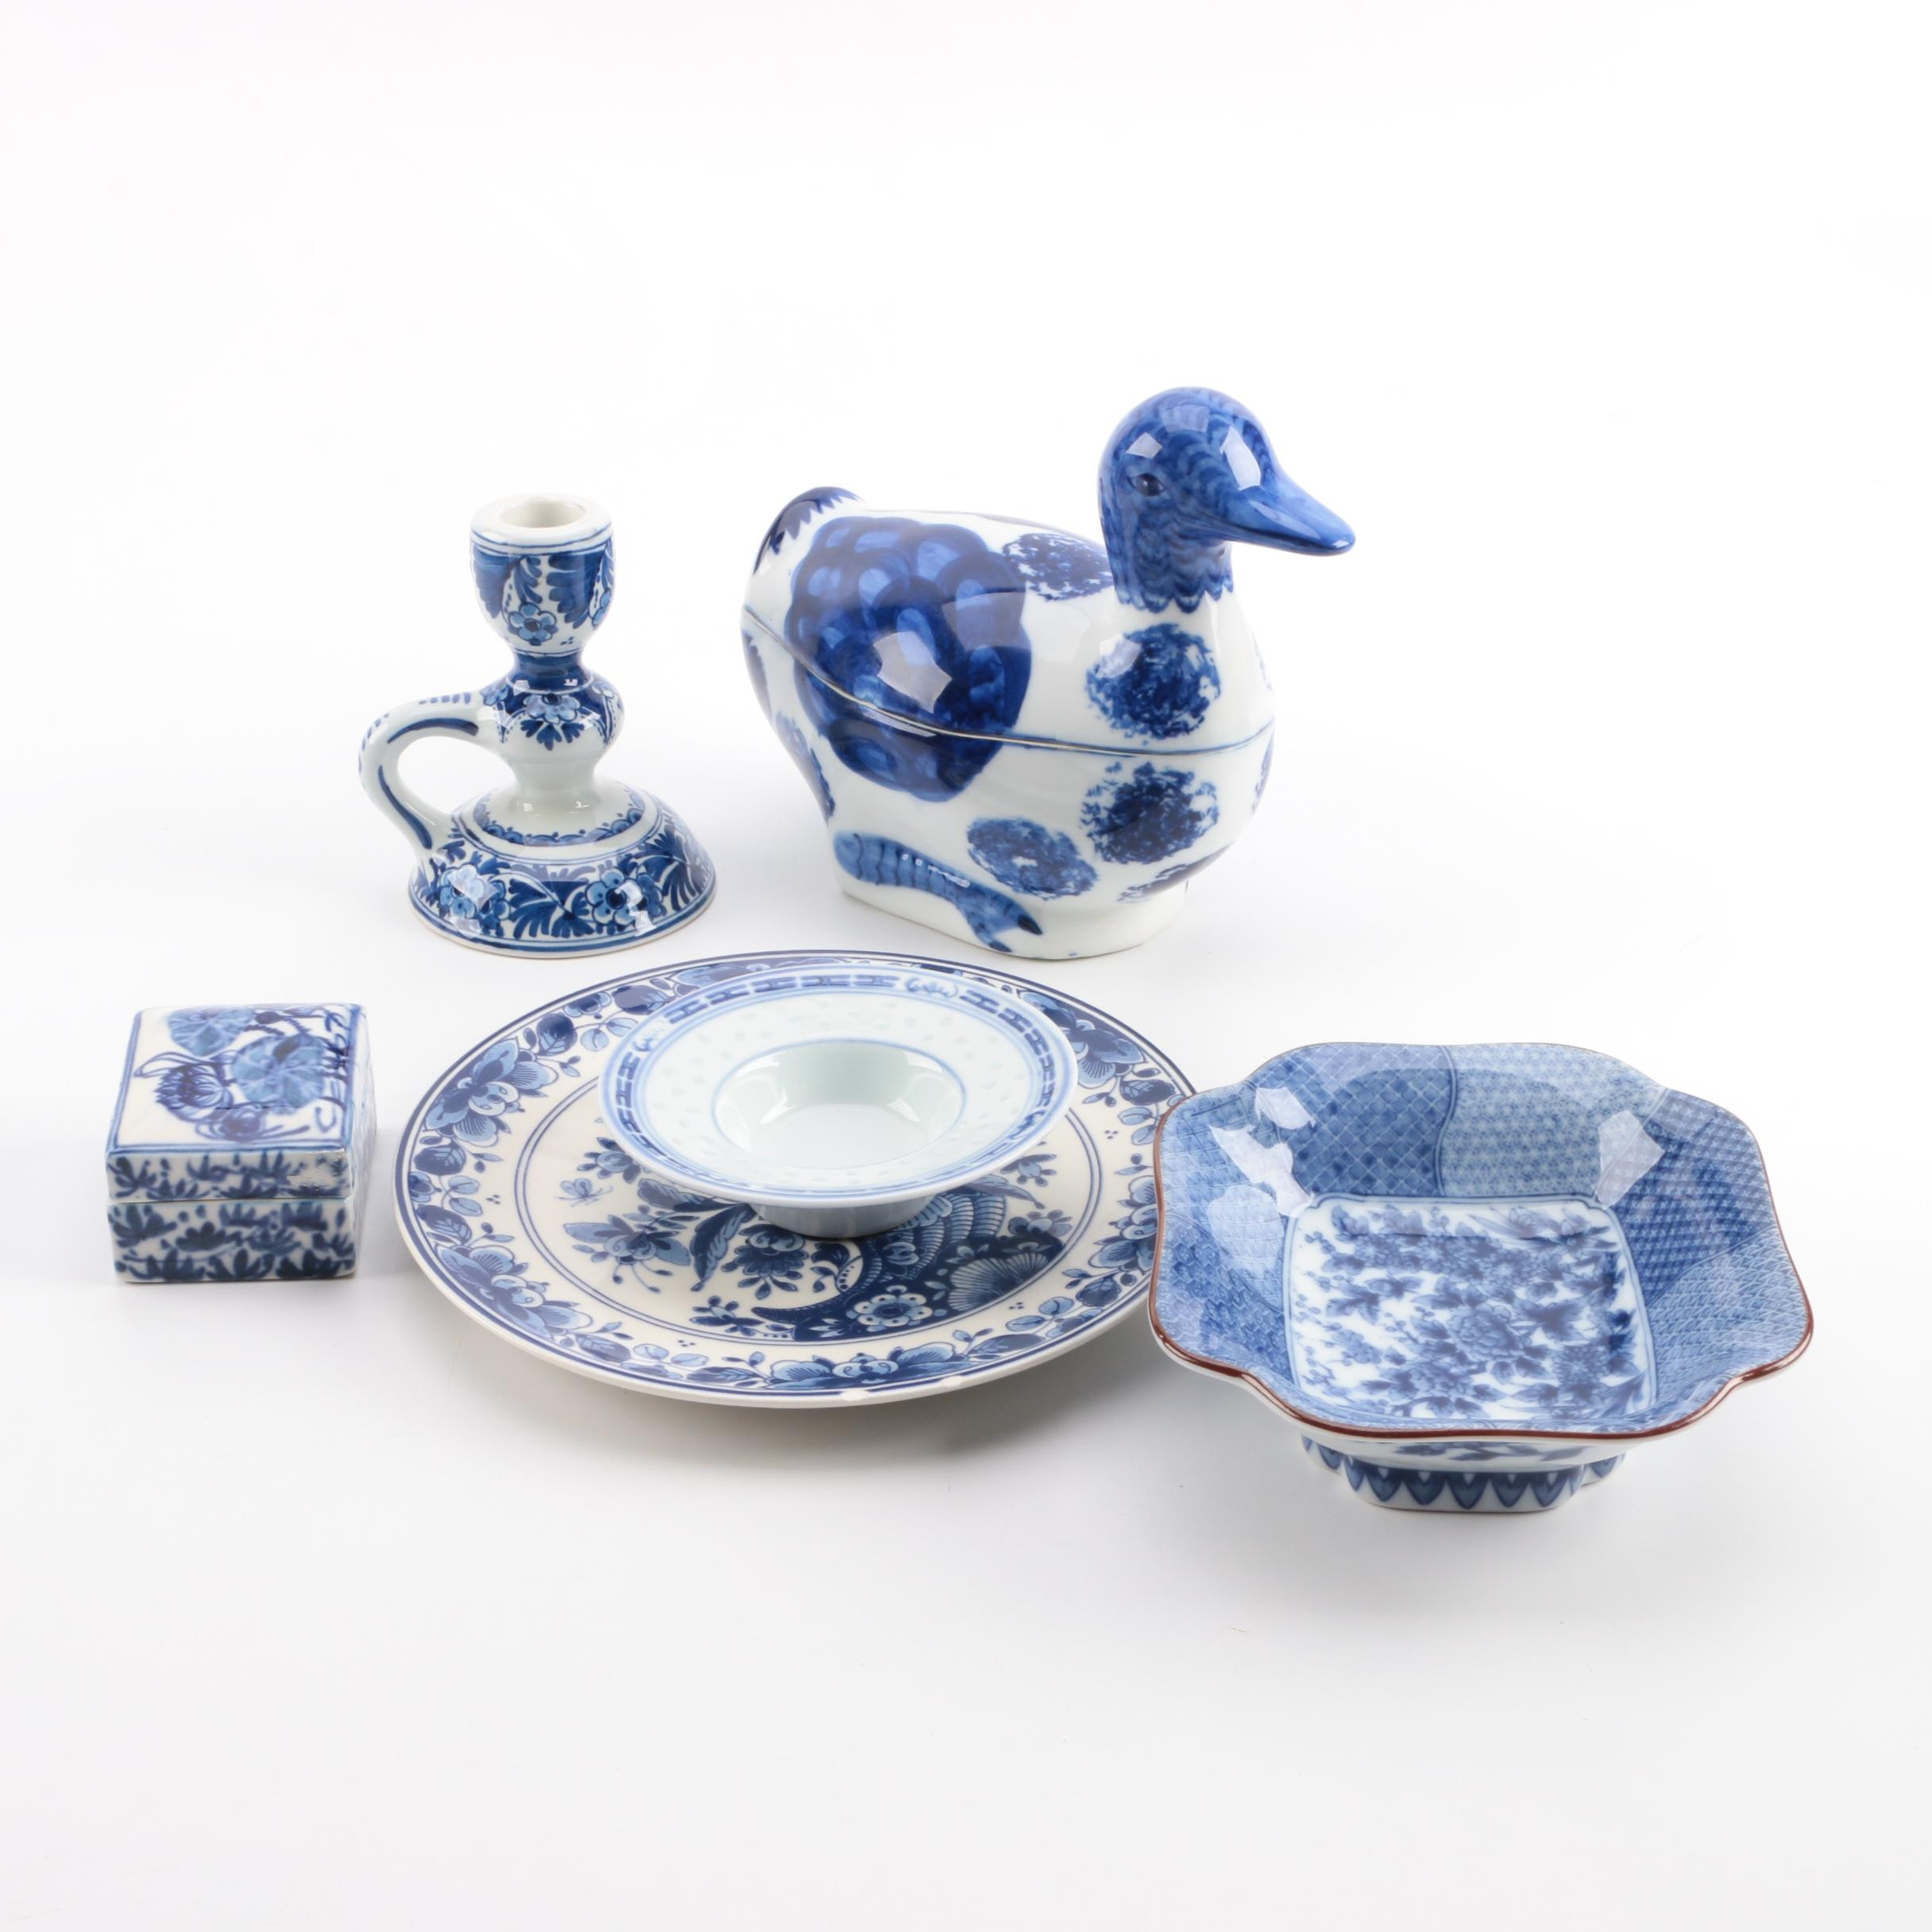 Assorted Blue and White Ceramic Decor Featuring Delft